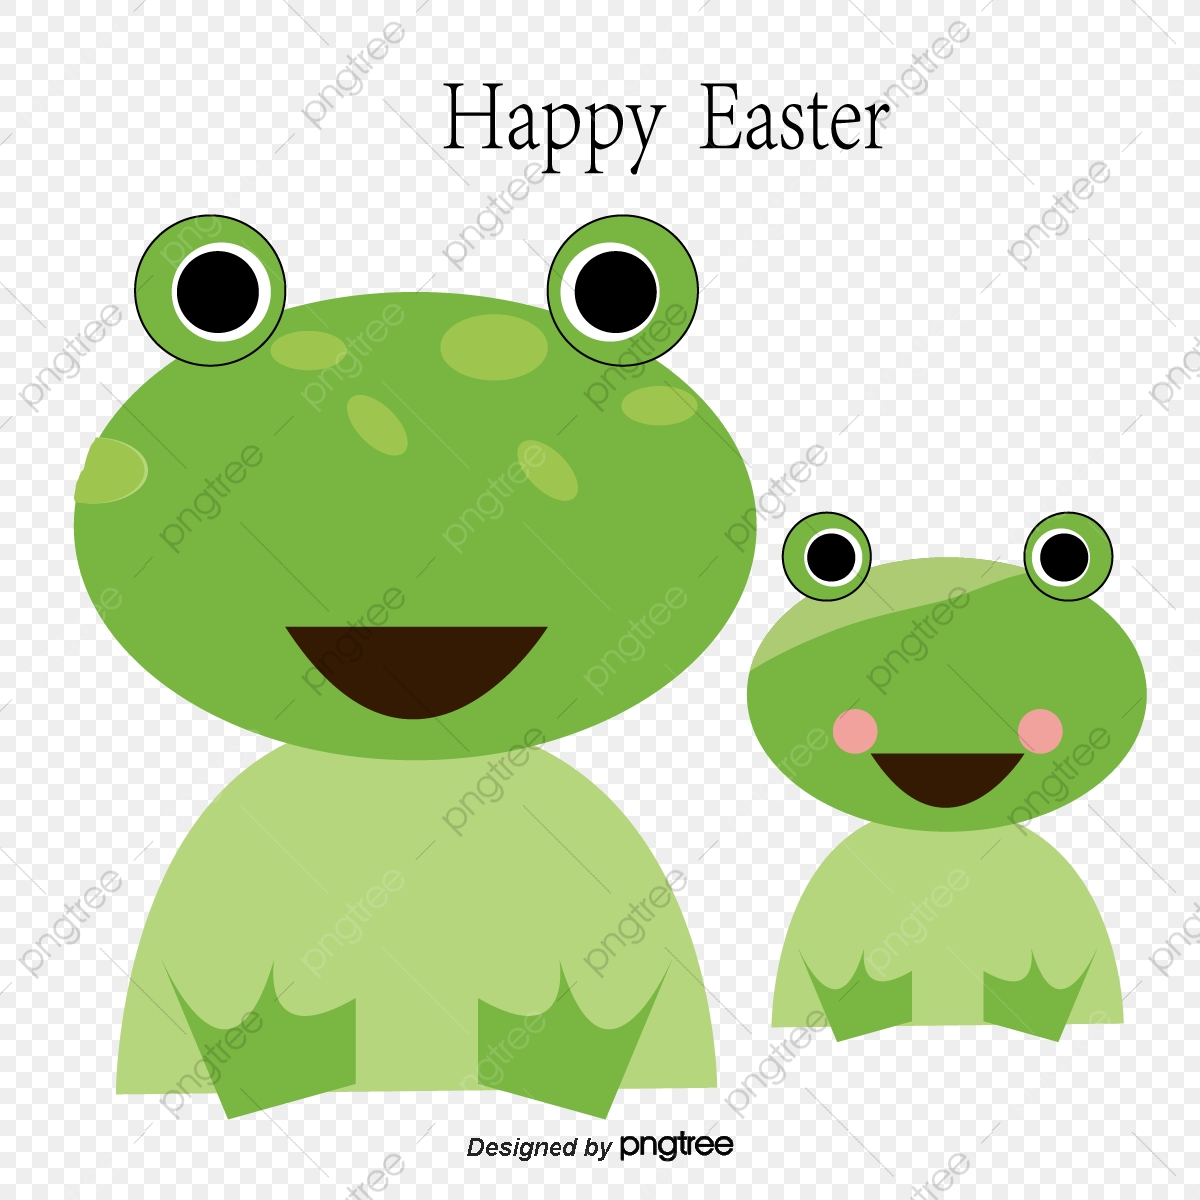 Cute Frog And Chick Vector, Frog Clipart, Cartoon Animals, Cartoon.